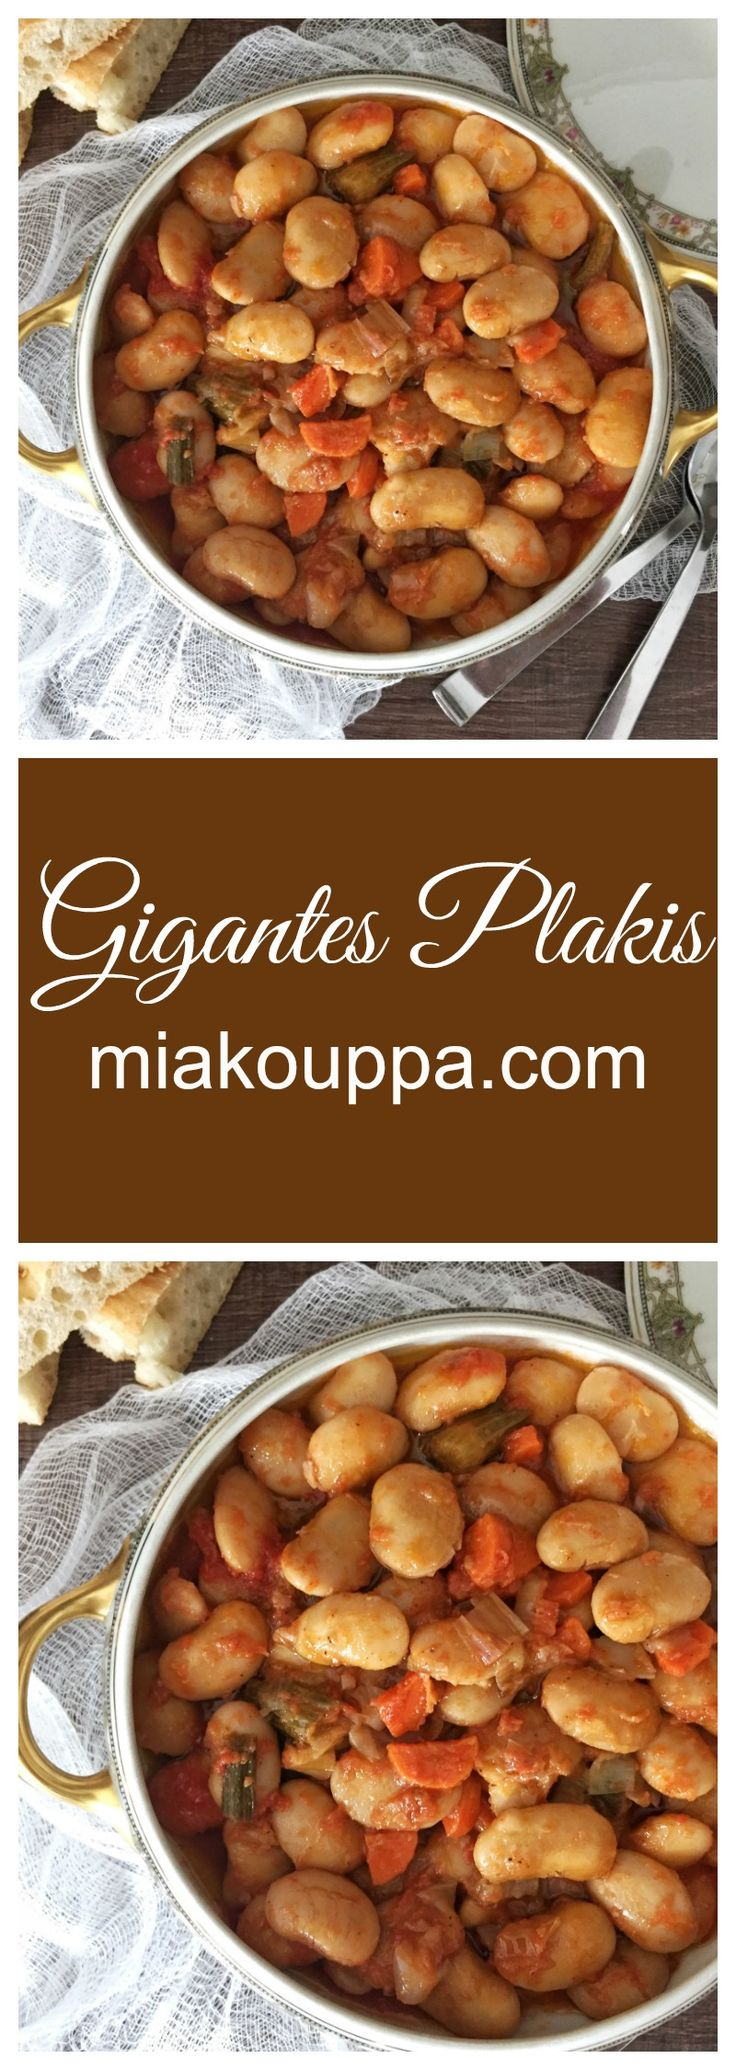 Try this Greek traditional dish.  Giant beans and vegetables  baked in a delicious tomato and herb sauce.  Gigantes Plaki (Φασόλια γίγαντες) #gigantesplaki #giantbeans #greek #greekrecipes